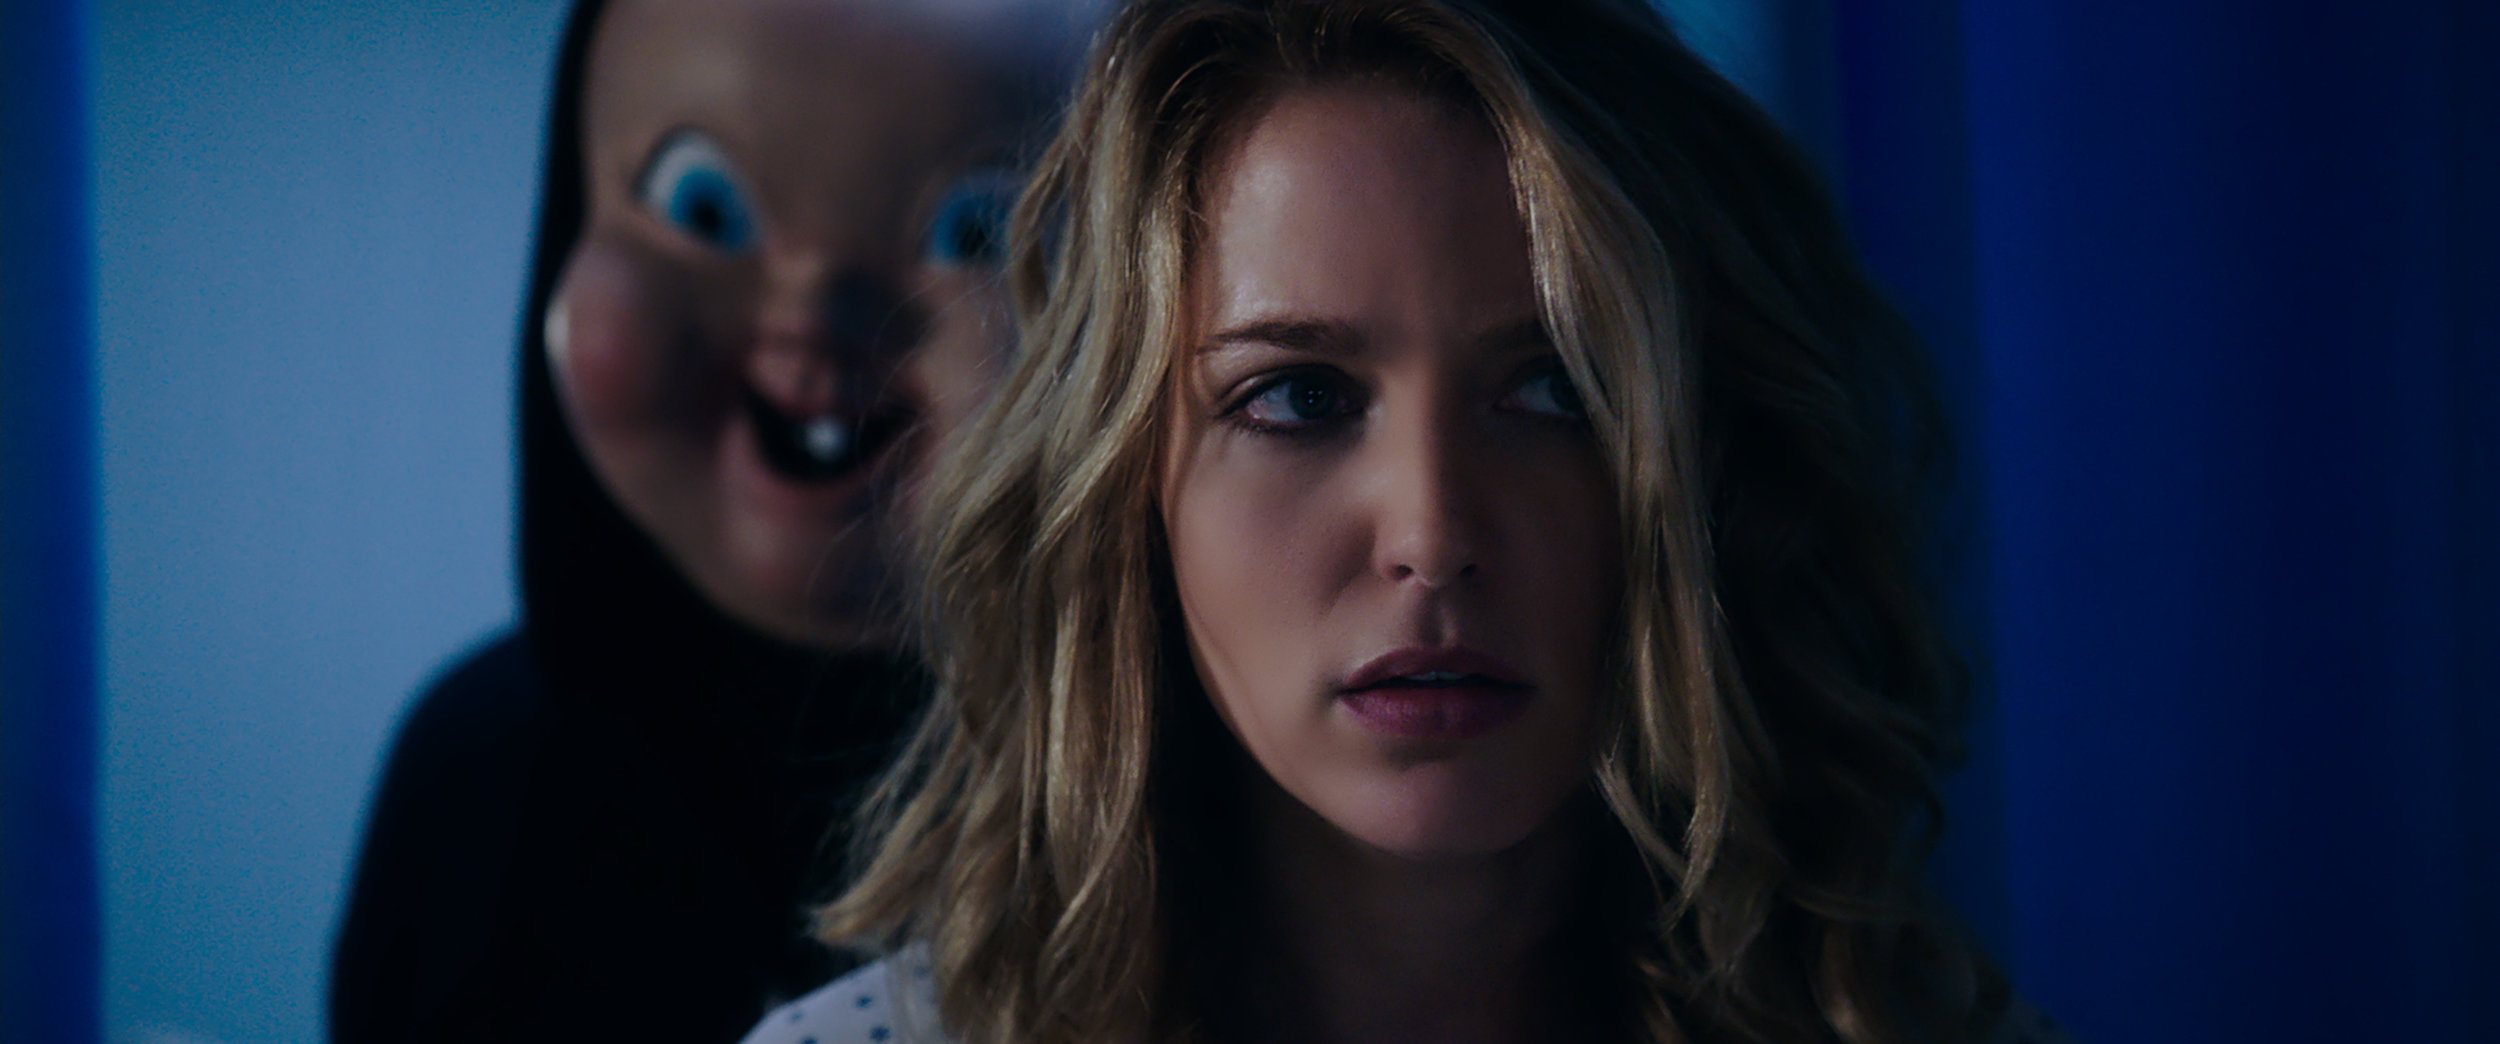 Jessica Rothe is, once again, stuck in a moment with a baby-faced killer and can't get out of it.